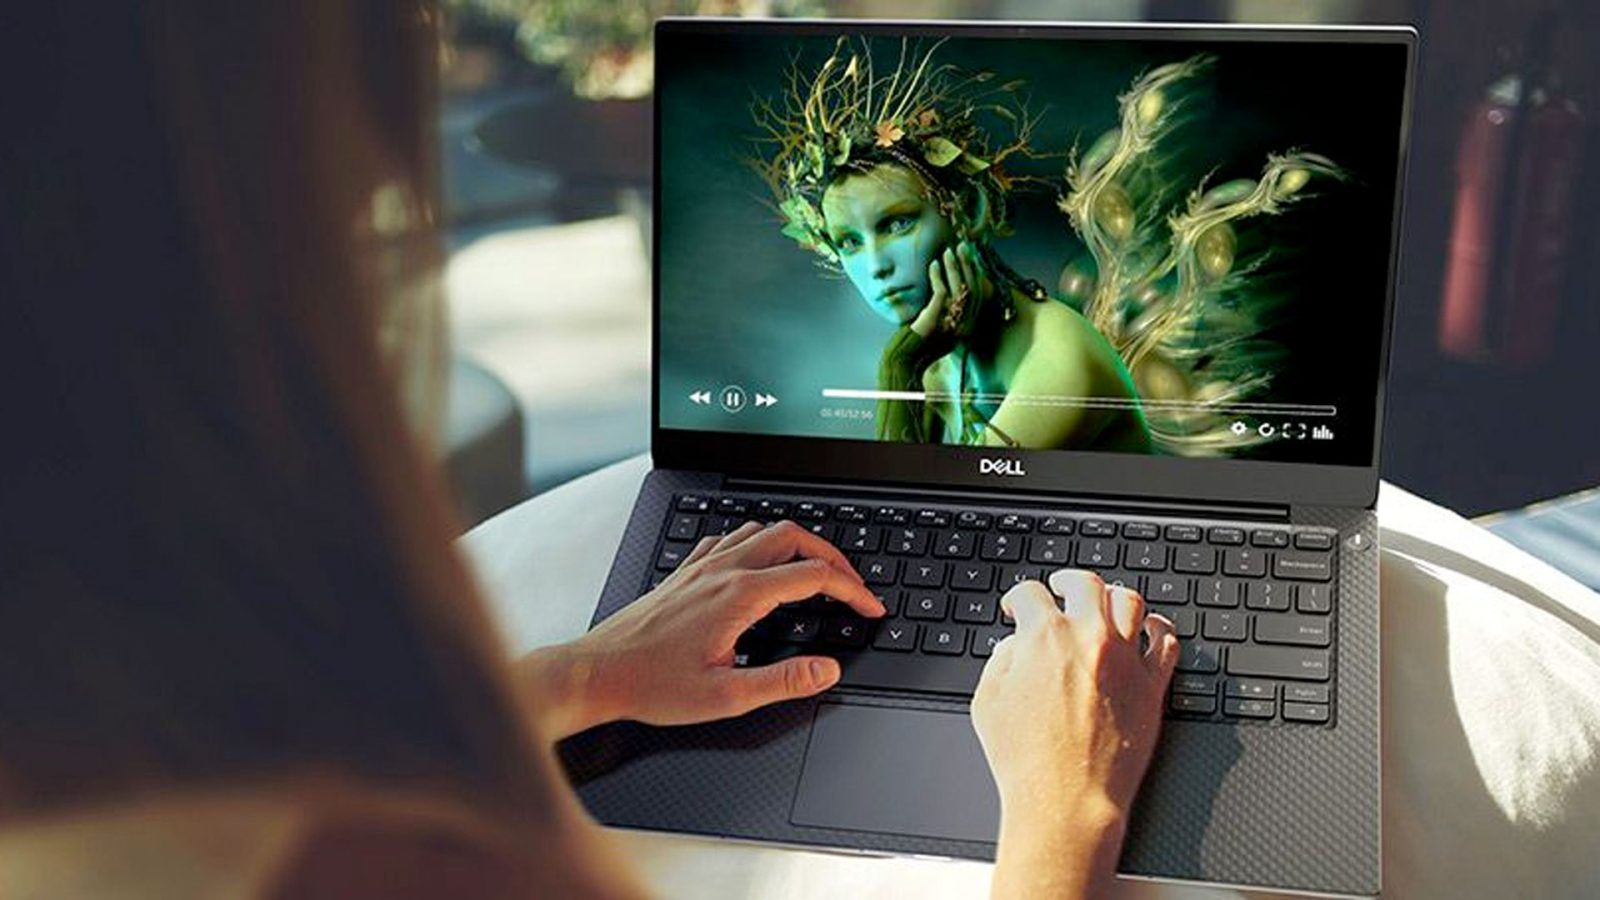 Dell's XPS 13 gets a near $1,000 discount with 2TB NVMe SSD, more from $999